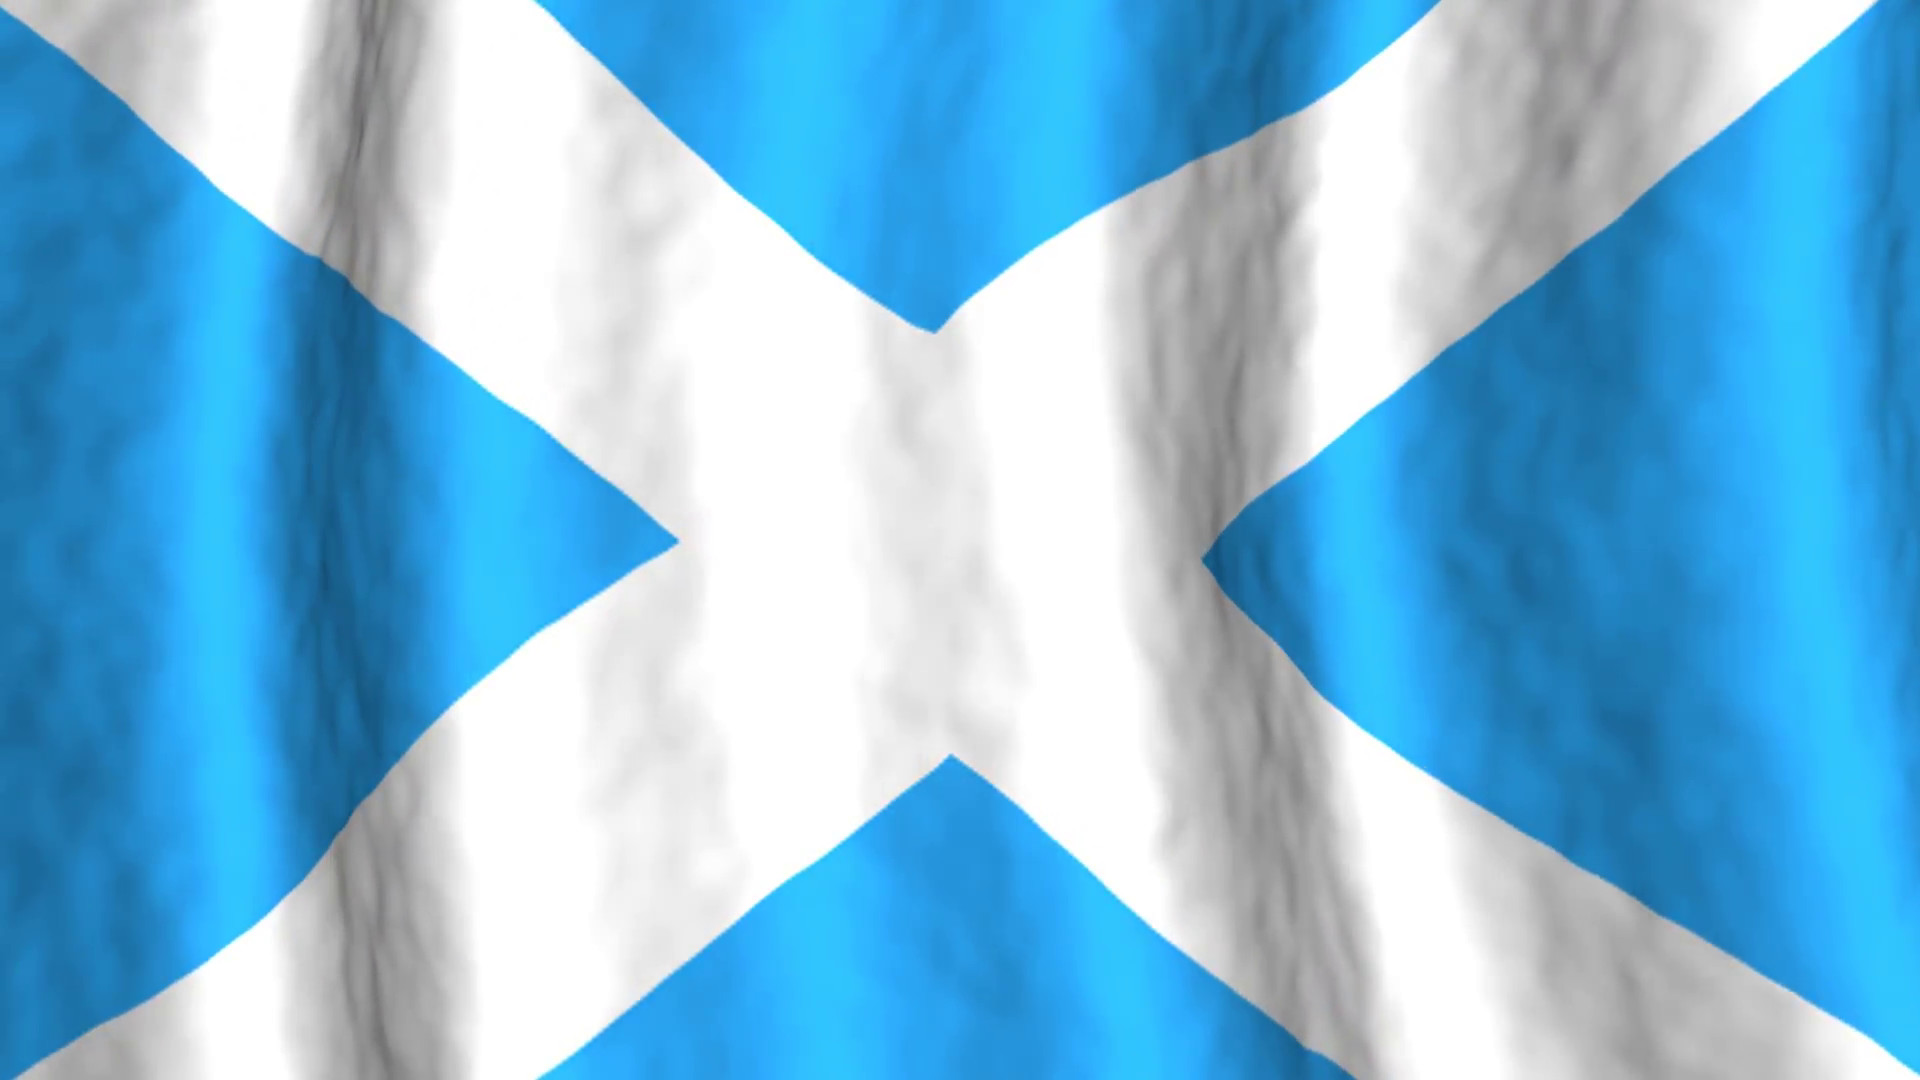 Scottish Flag Wallpaper (68+ images)